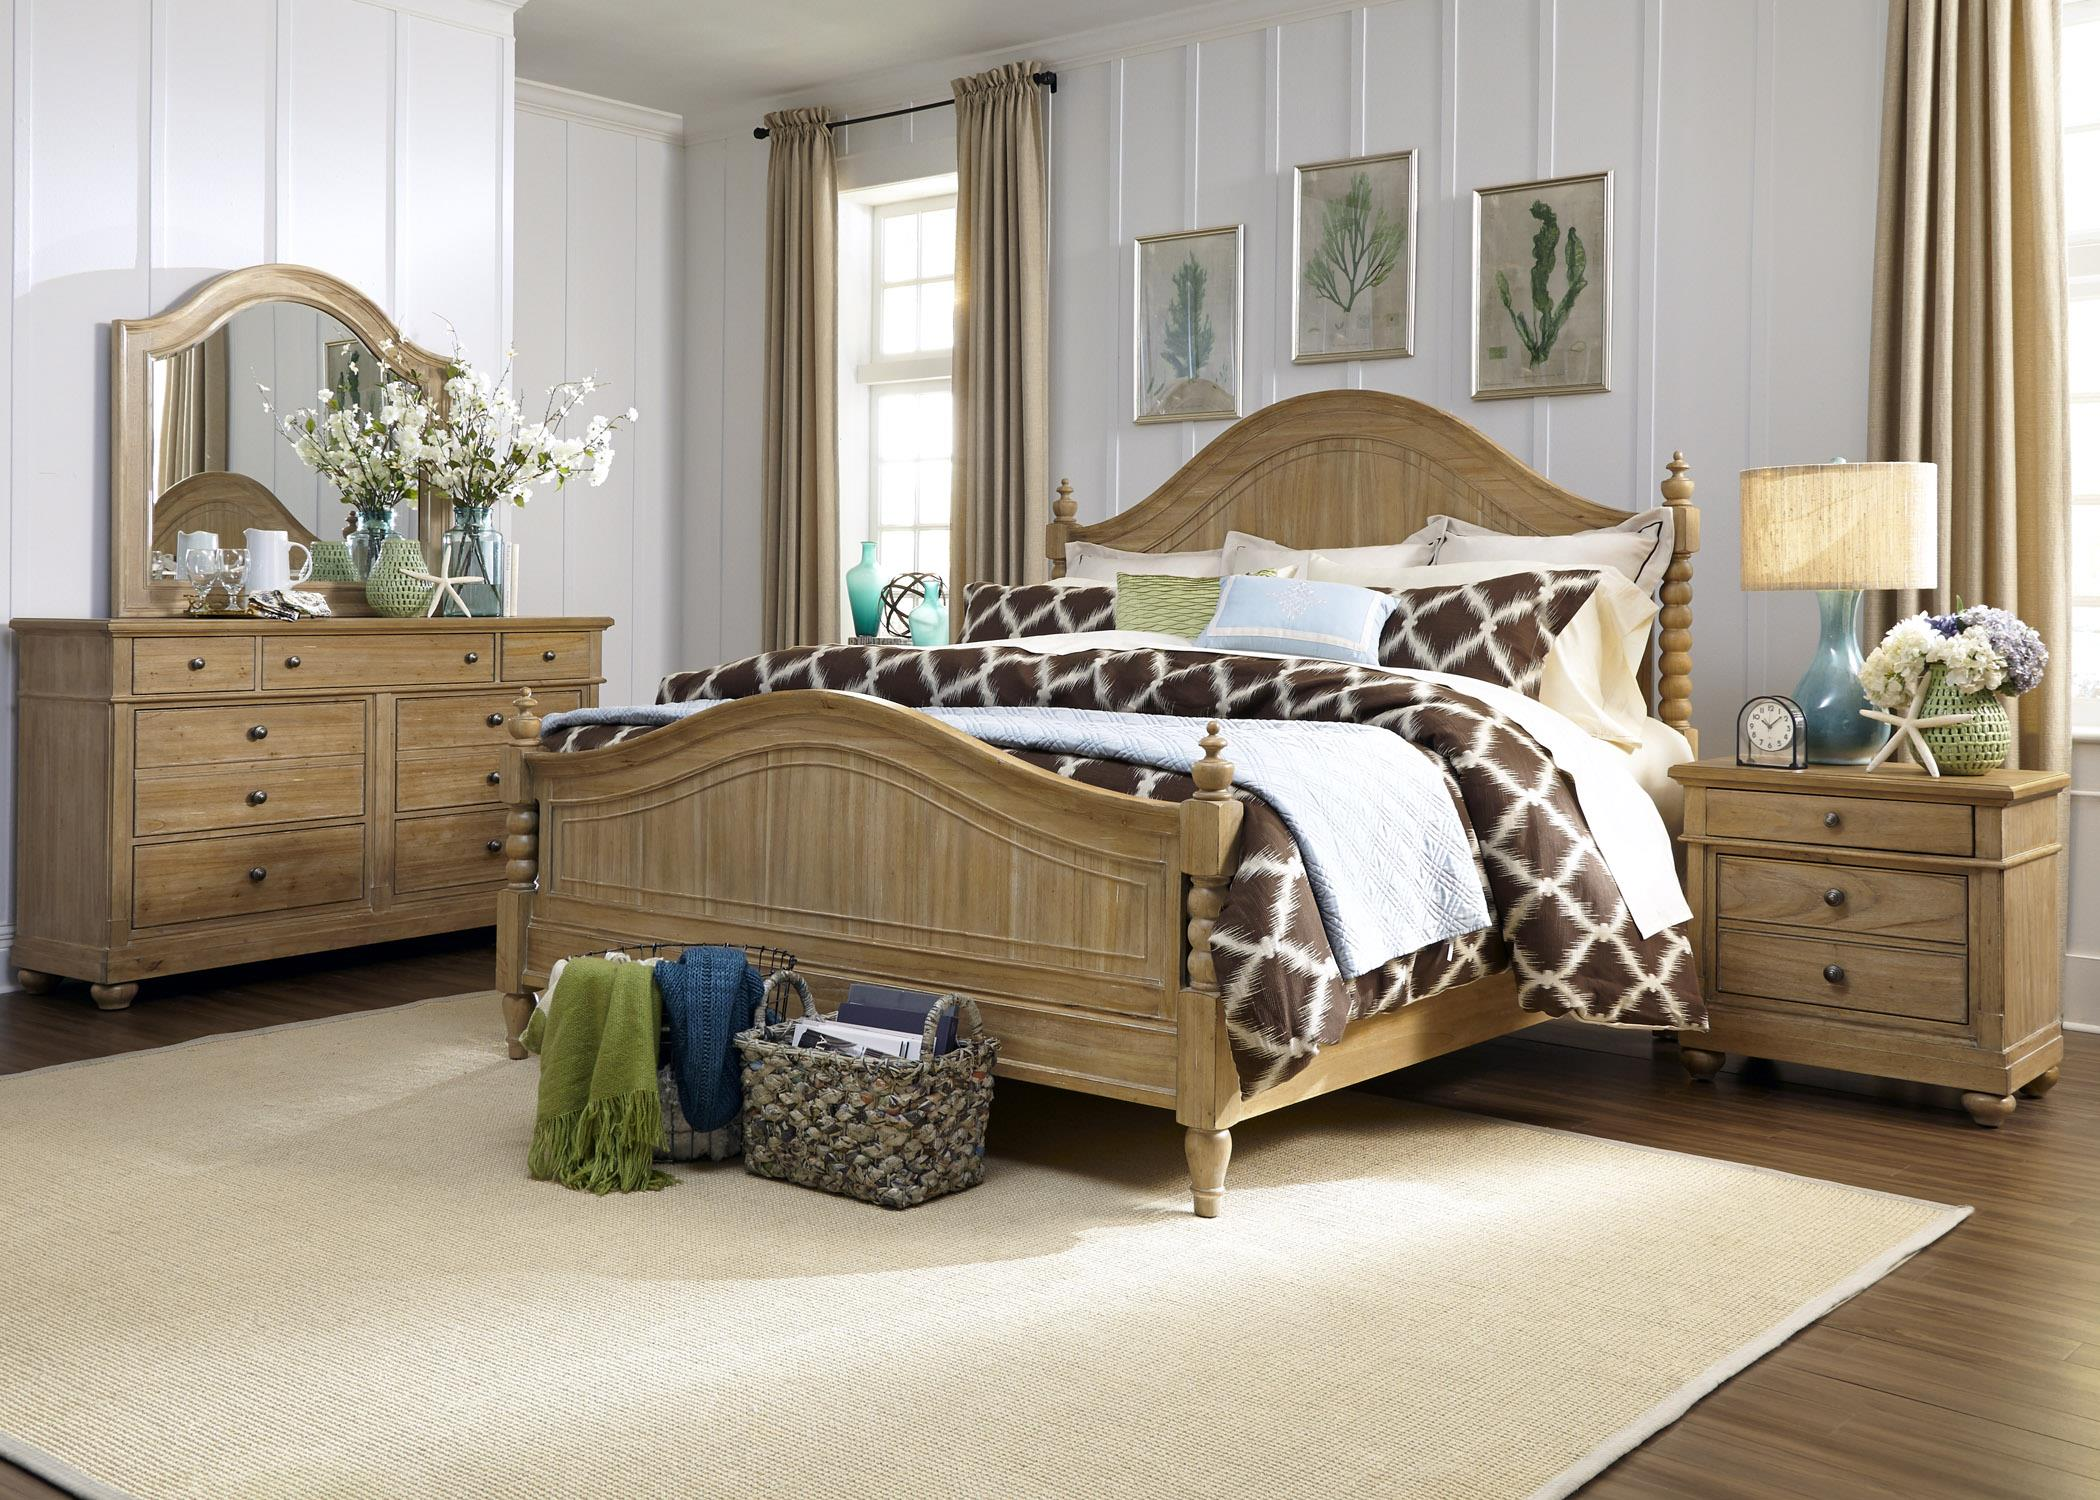 Liberty Furniture Harbor View King Bedroom Group - Item Number: 531-BR-KPSDMN